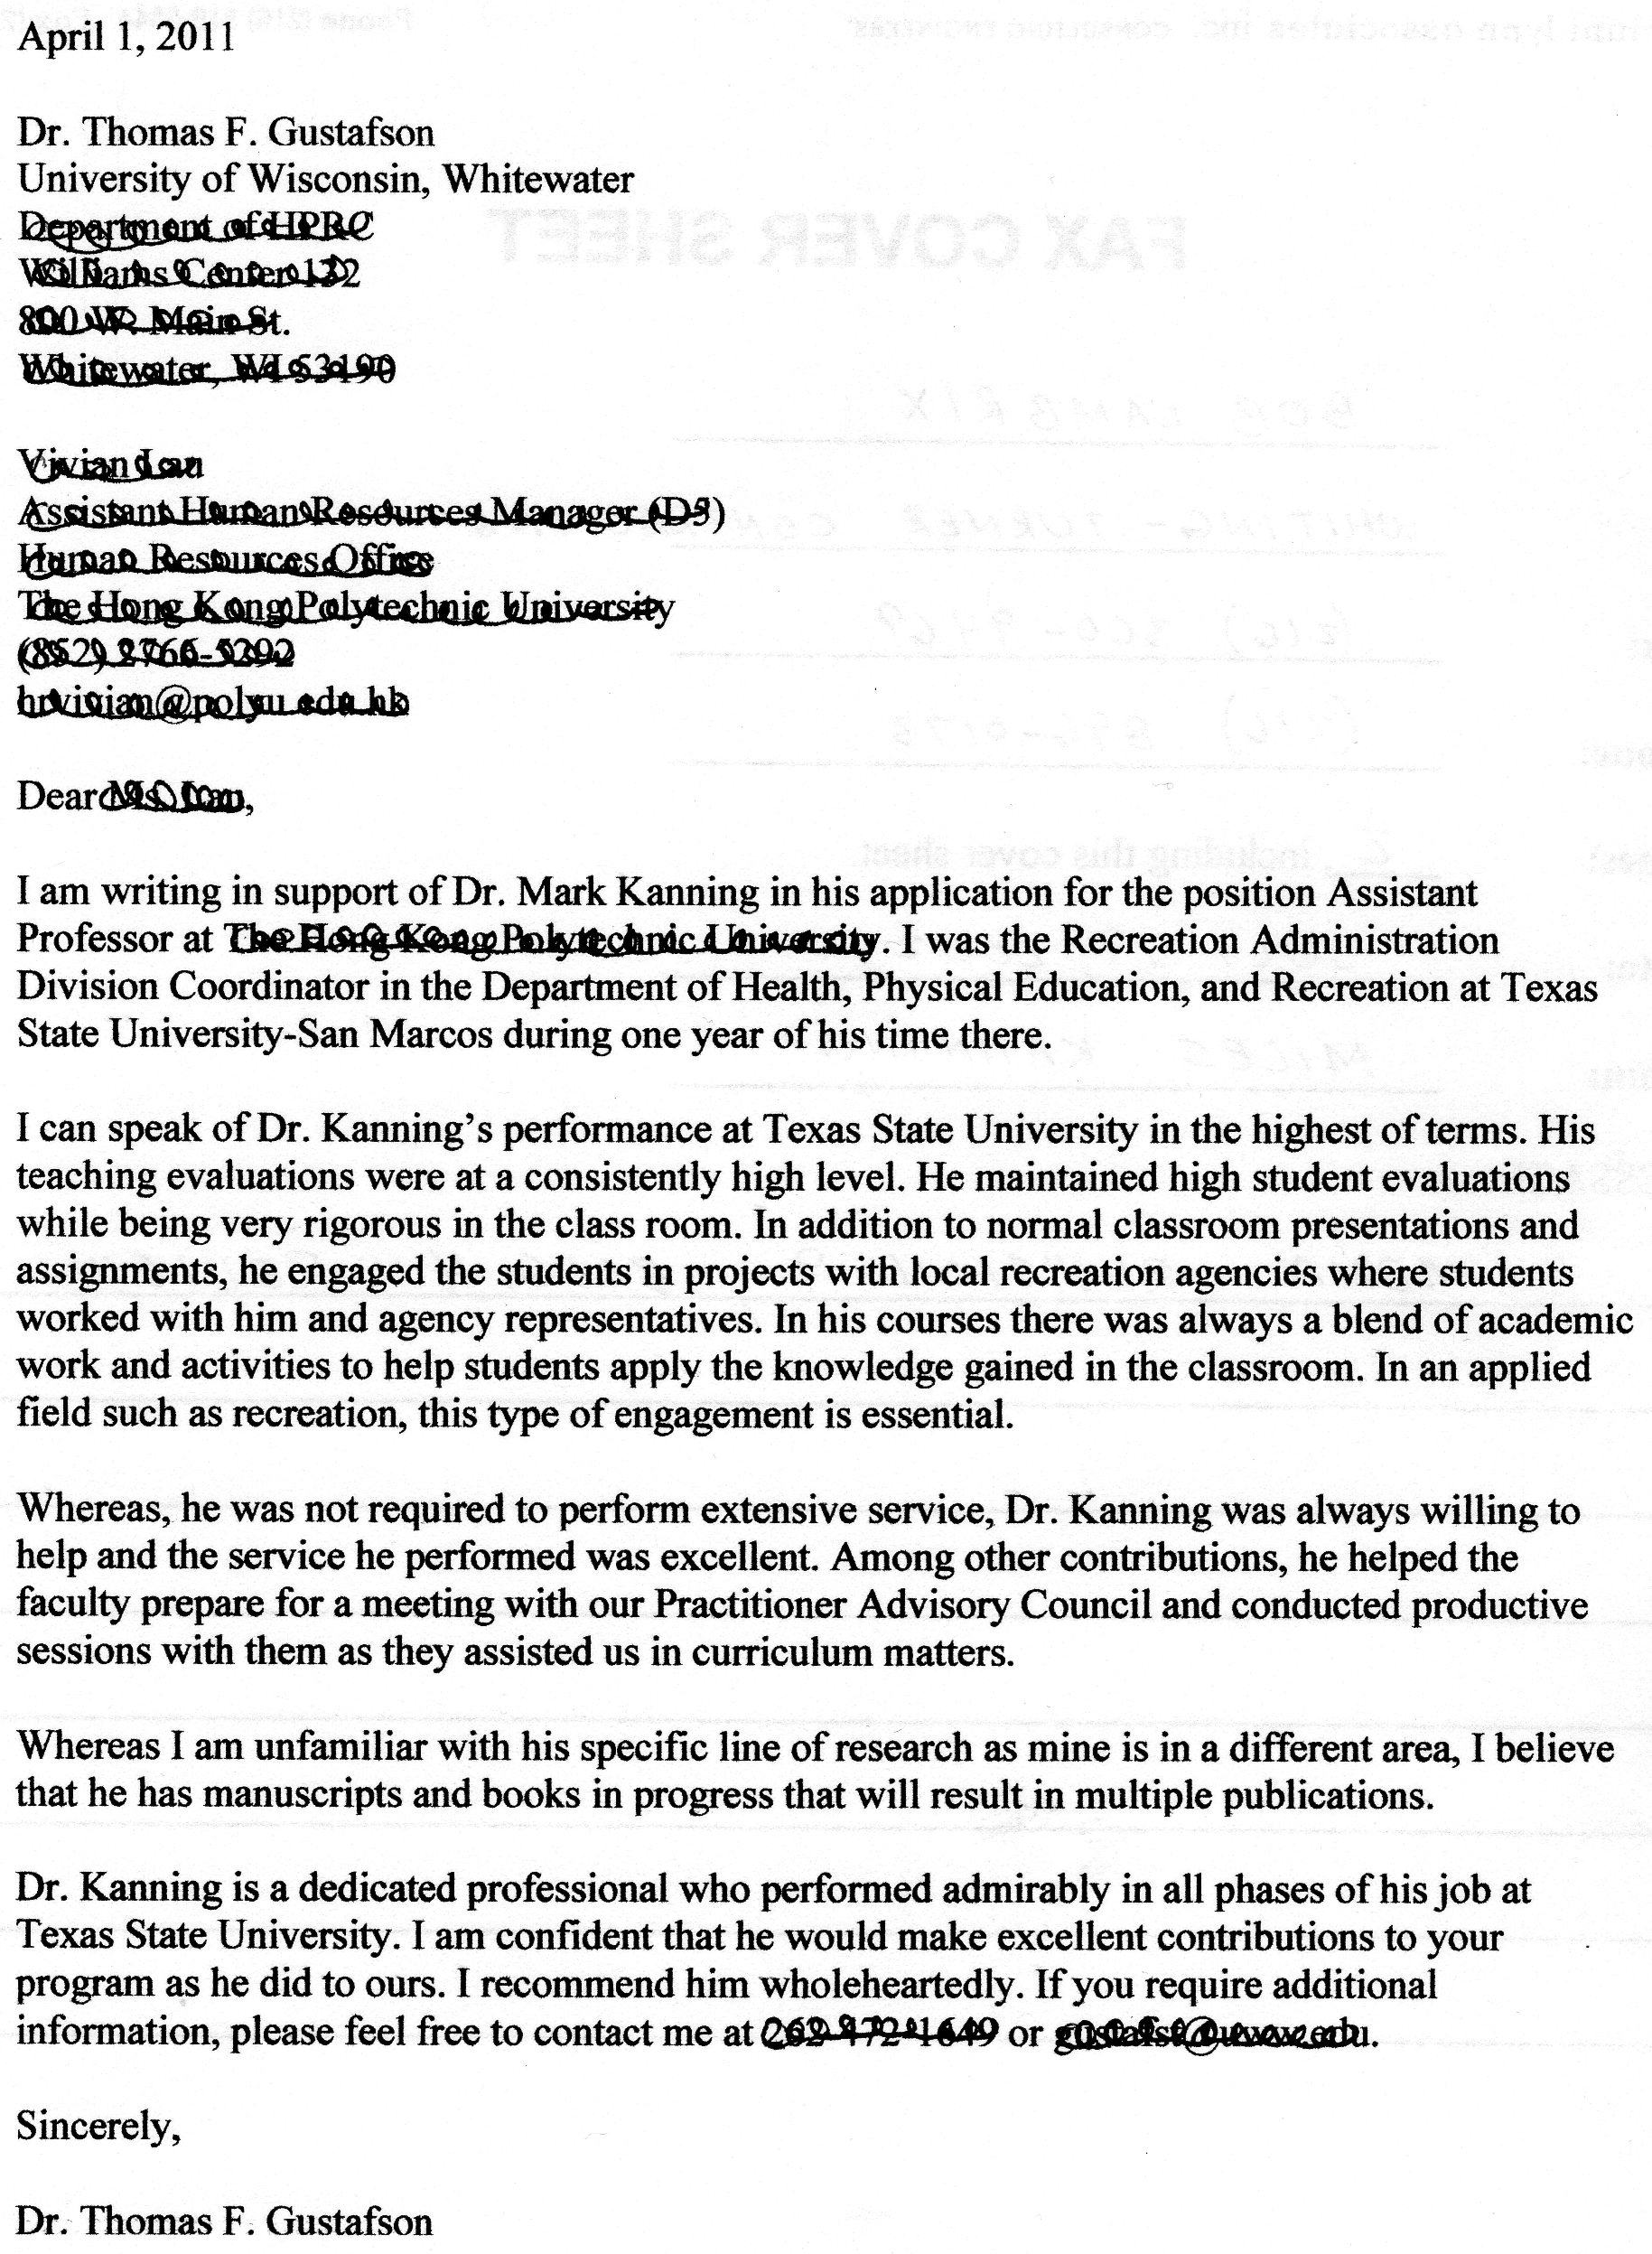 Sample Reference Letter For Graduate School From Coworker